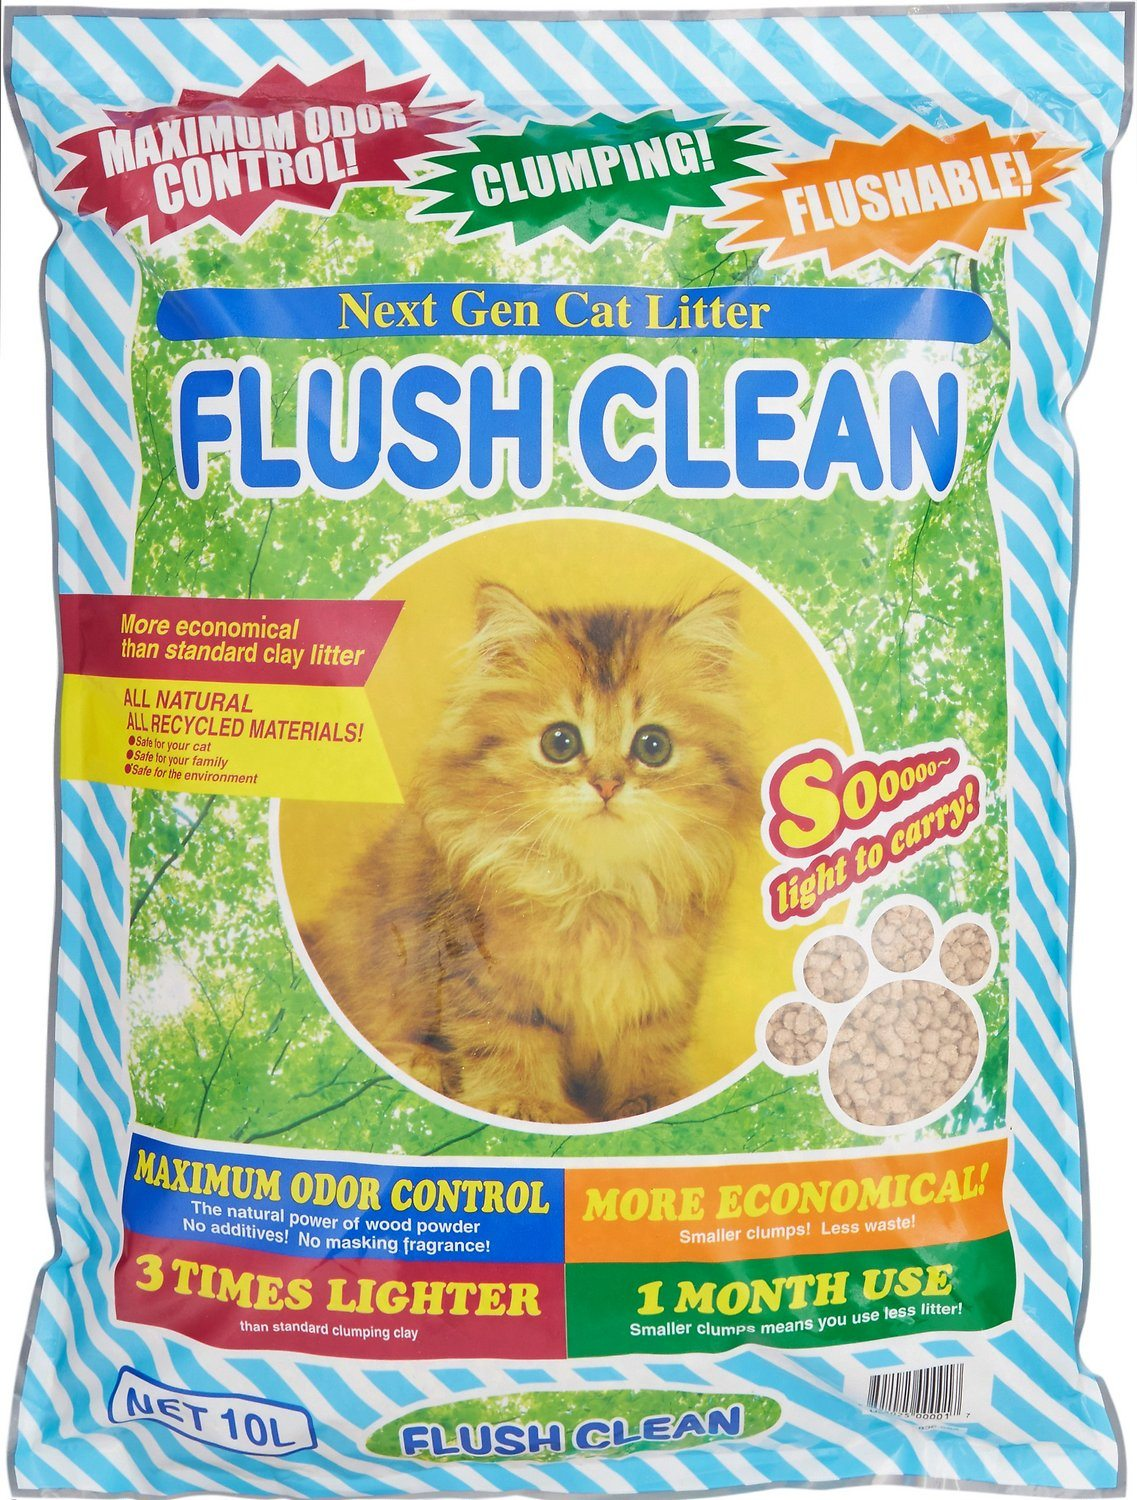 Next Gen Pet Flushable litter